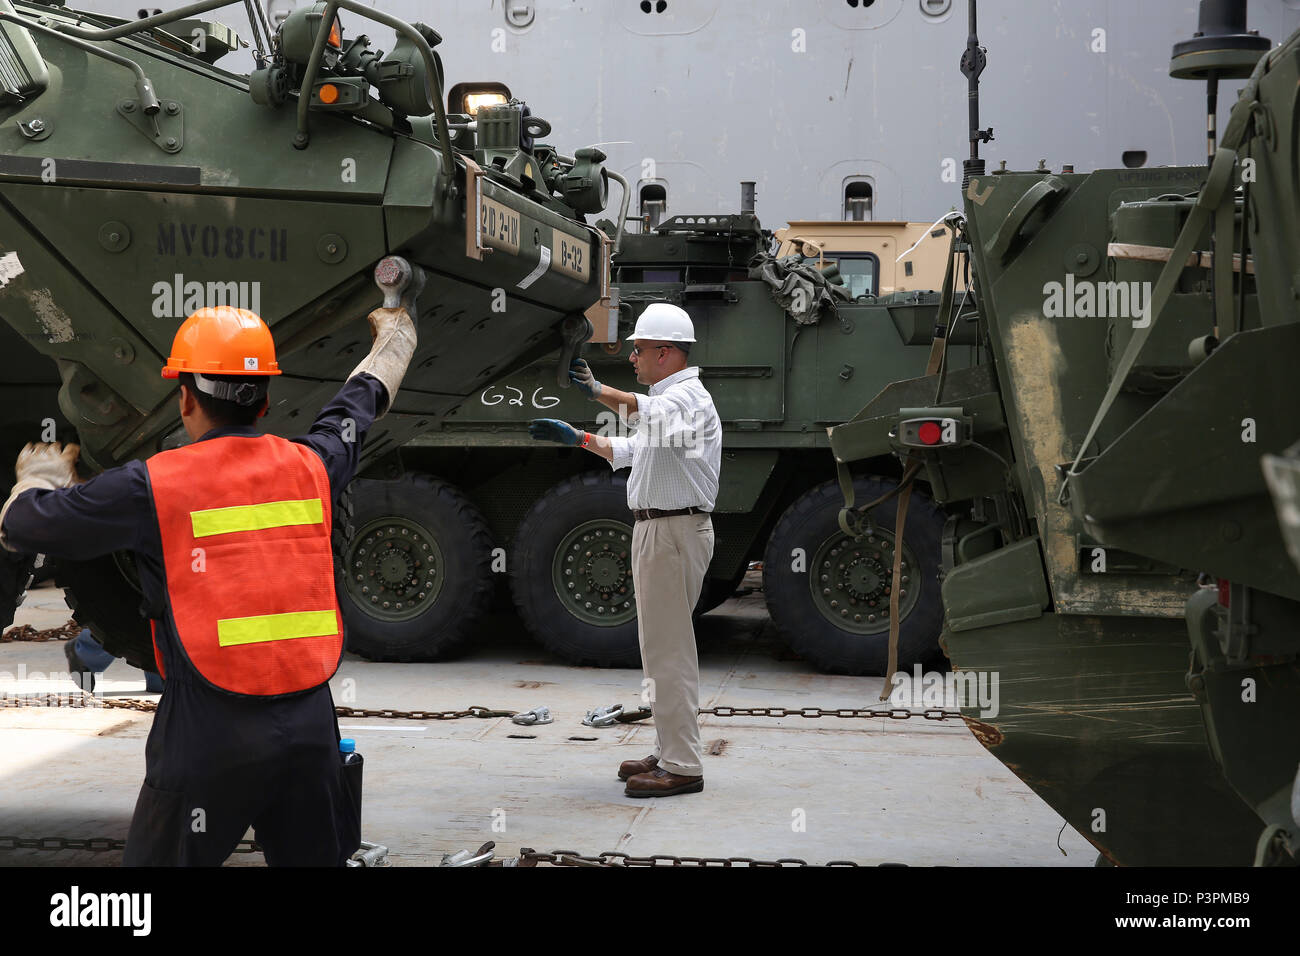 160712-N-IX266-008 SATTAHIP, Thailand—An M1126 Stryker is lowered into general purpose, heavy lift ship MV OCEAN GLORY during a backload of equipment at Chuk Samet, here, from exercise Hanuman Guardian, July 12. Military Sealift Command's contracted voyage-charter MV OCEAN GLORY recently conducted a backload of about 250 items in Thailand as part of U.S. Army Pacific's mobility operation PACIFIC PATHWAYS 16-2. (U.S. Navy photo by Grady T. Fontana/Released) - Stock Image